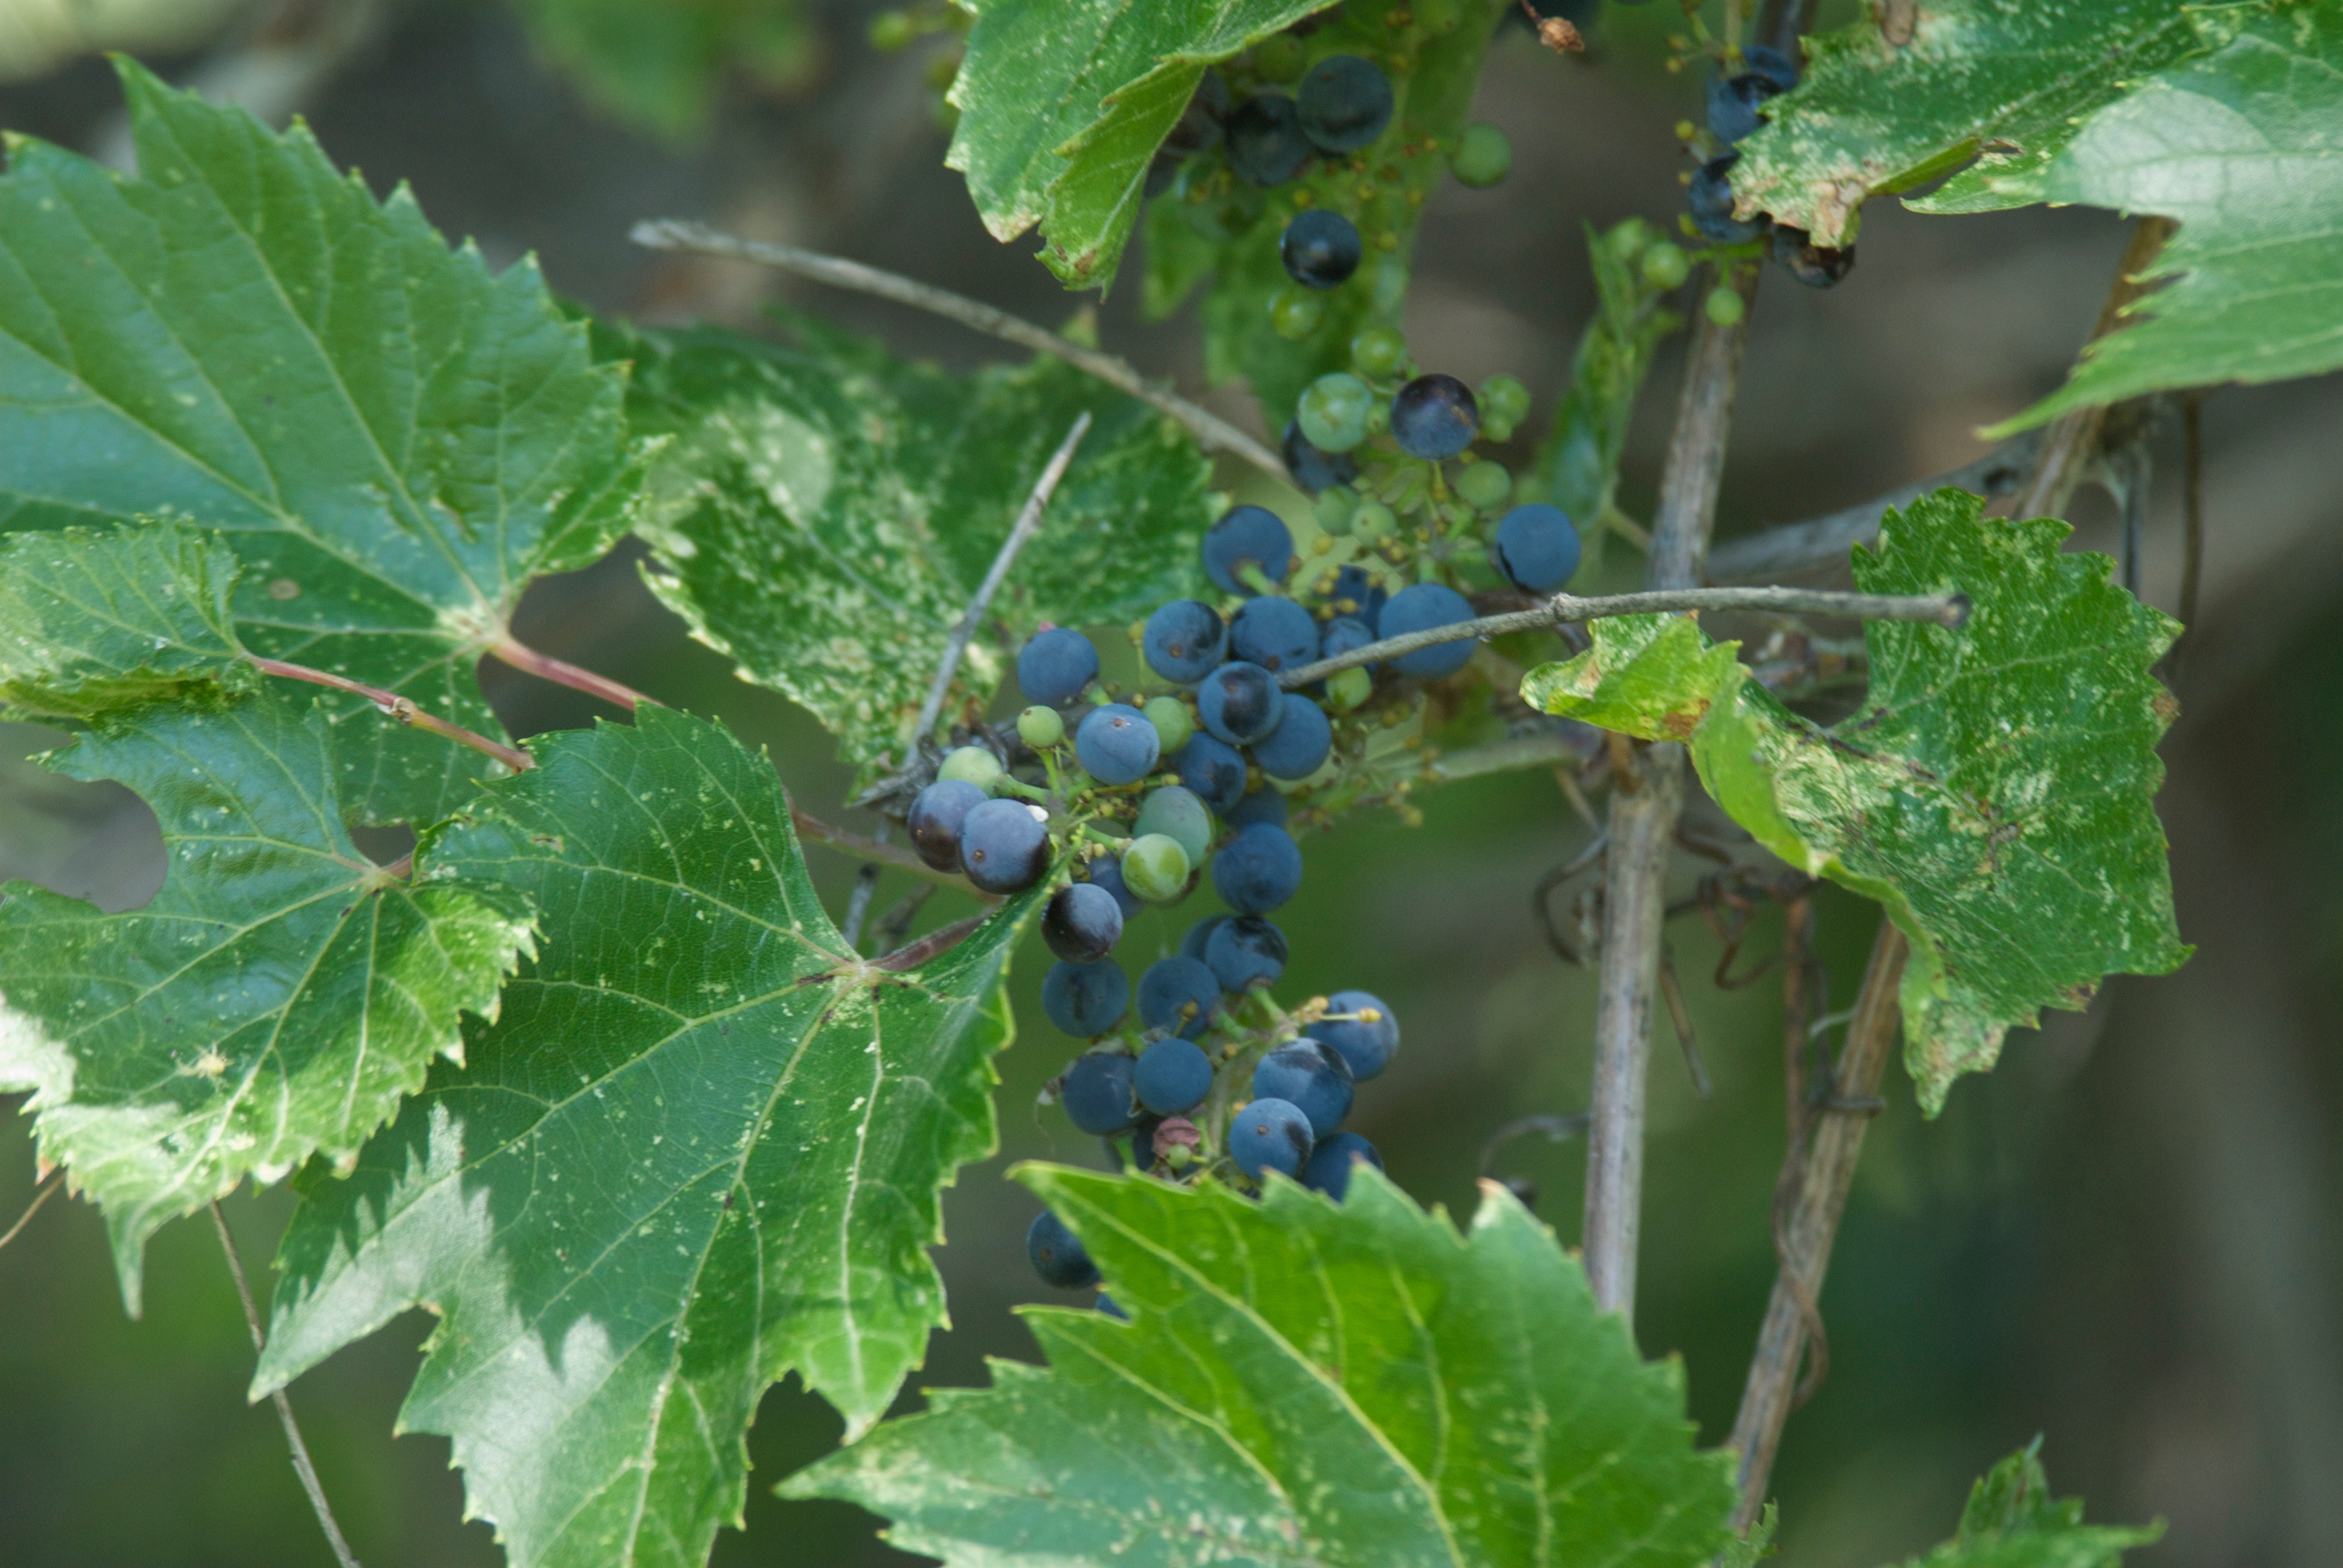 Grapes at the River (Vitis riparia)